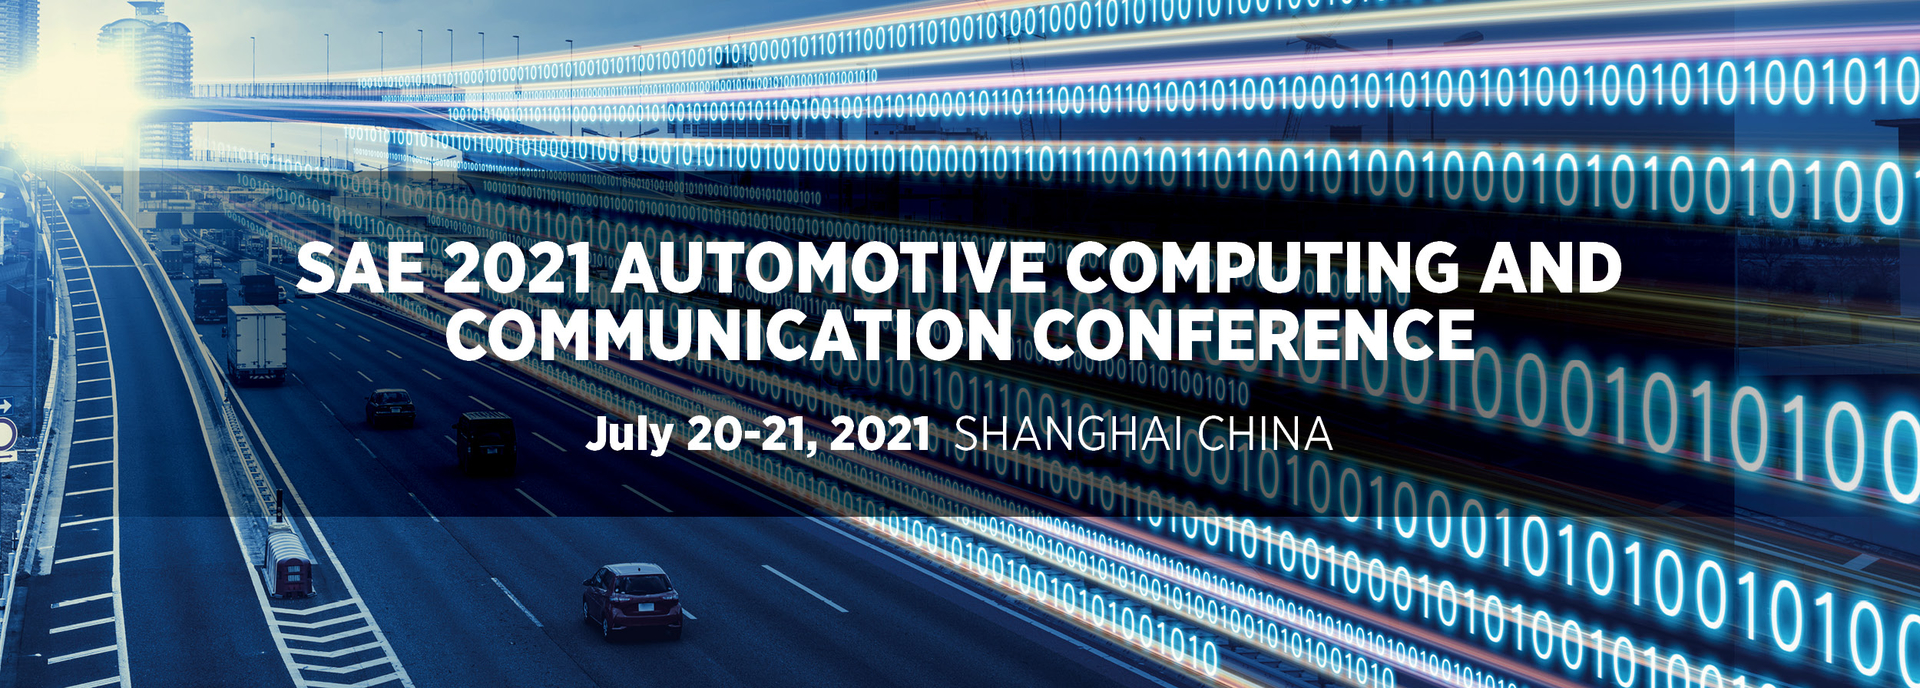 SAE 2021 Automotive Computing and Communication Conference